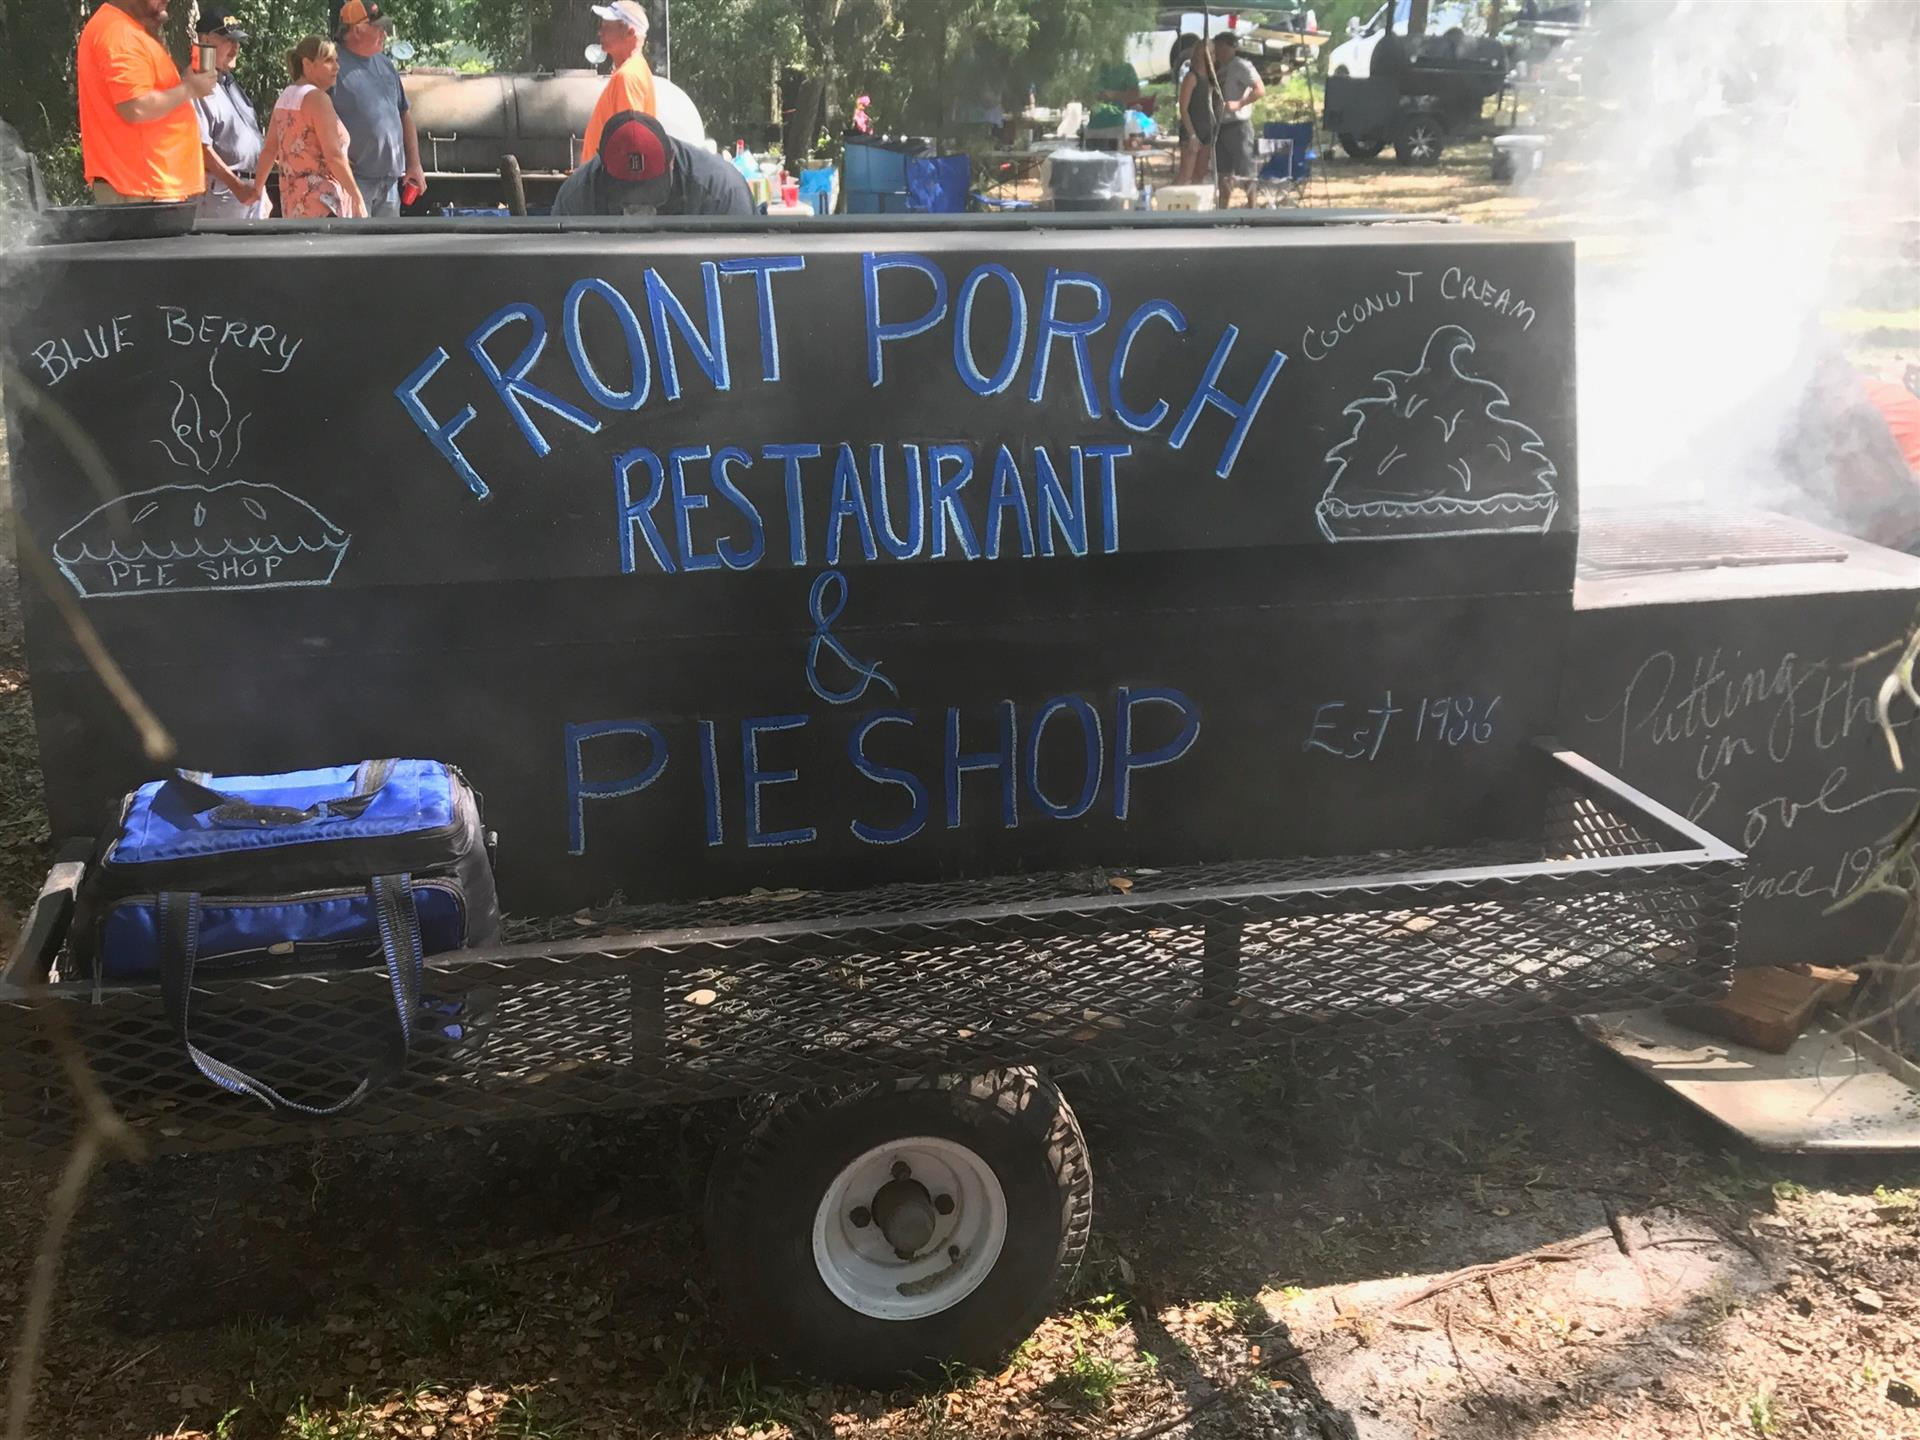 front porch pie shop sign on a smoker